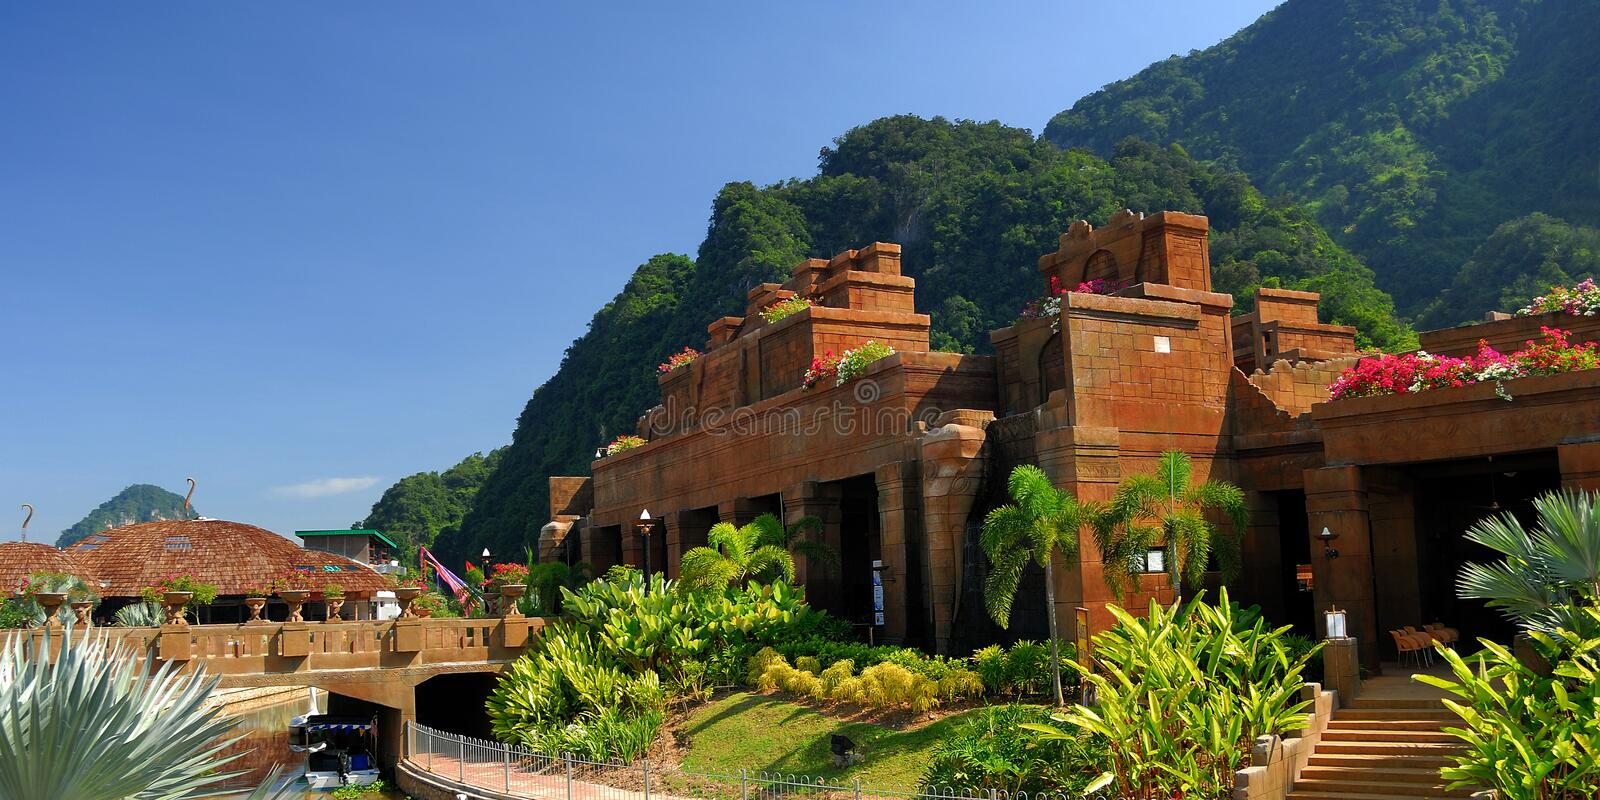 Sunway Lost World Of Tambun. Is an action packed, wholesome family adventure destination royalty free stock photo